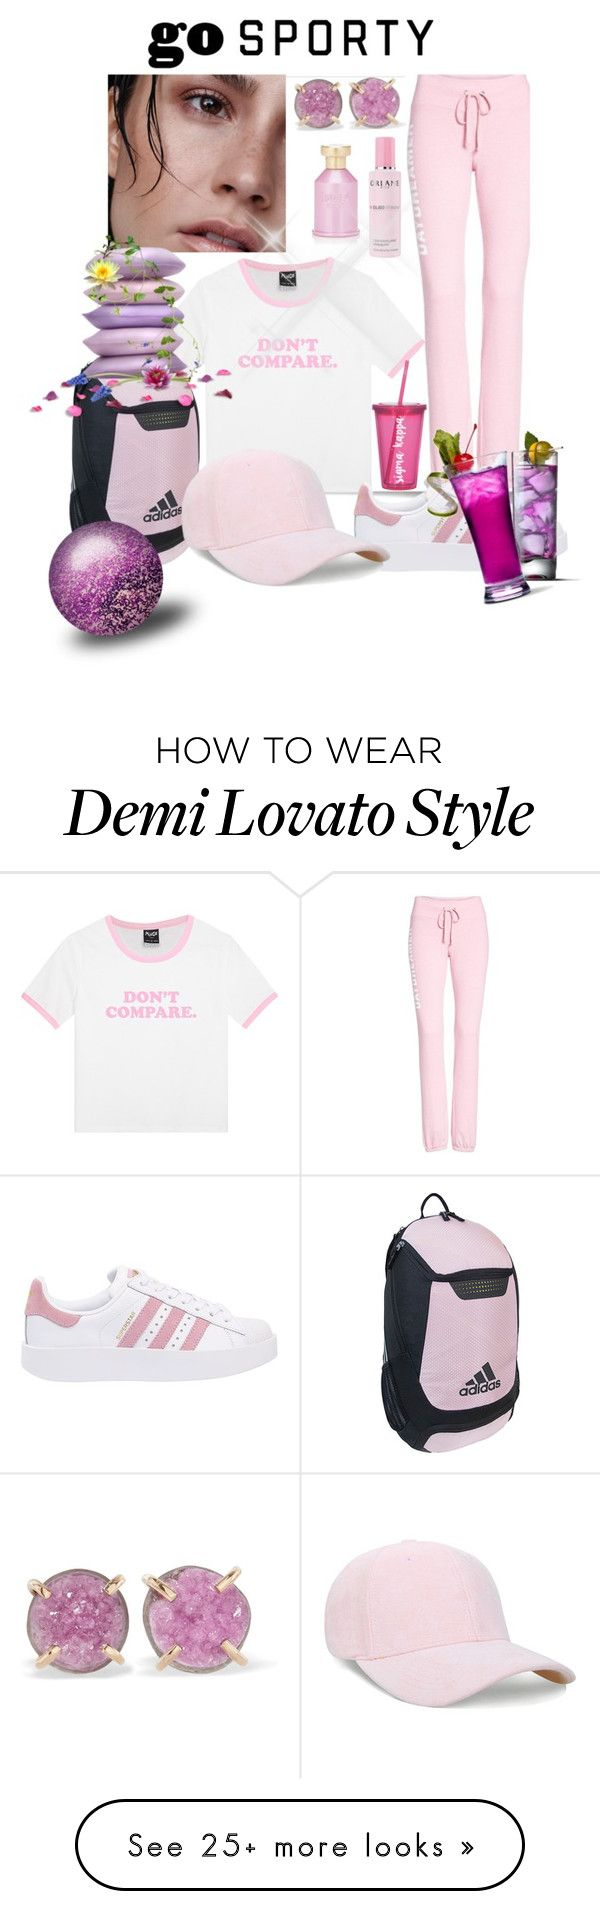 """Untitled #7876"" by princhelle-mack on Polyvore featuring Dream Scene, adidas Originals, adidas, Melissa Joy Manning, Orlane and Bois"